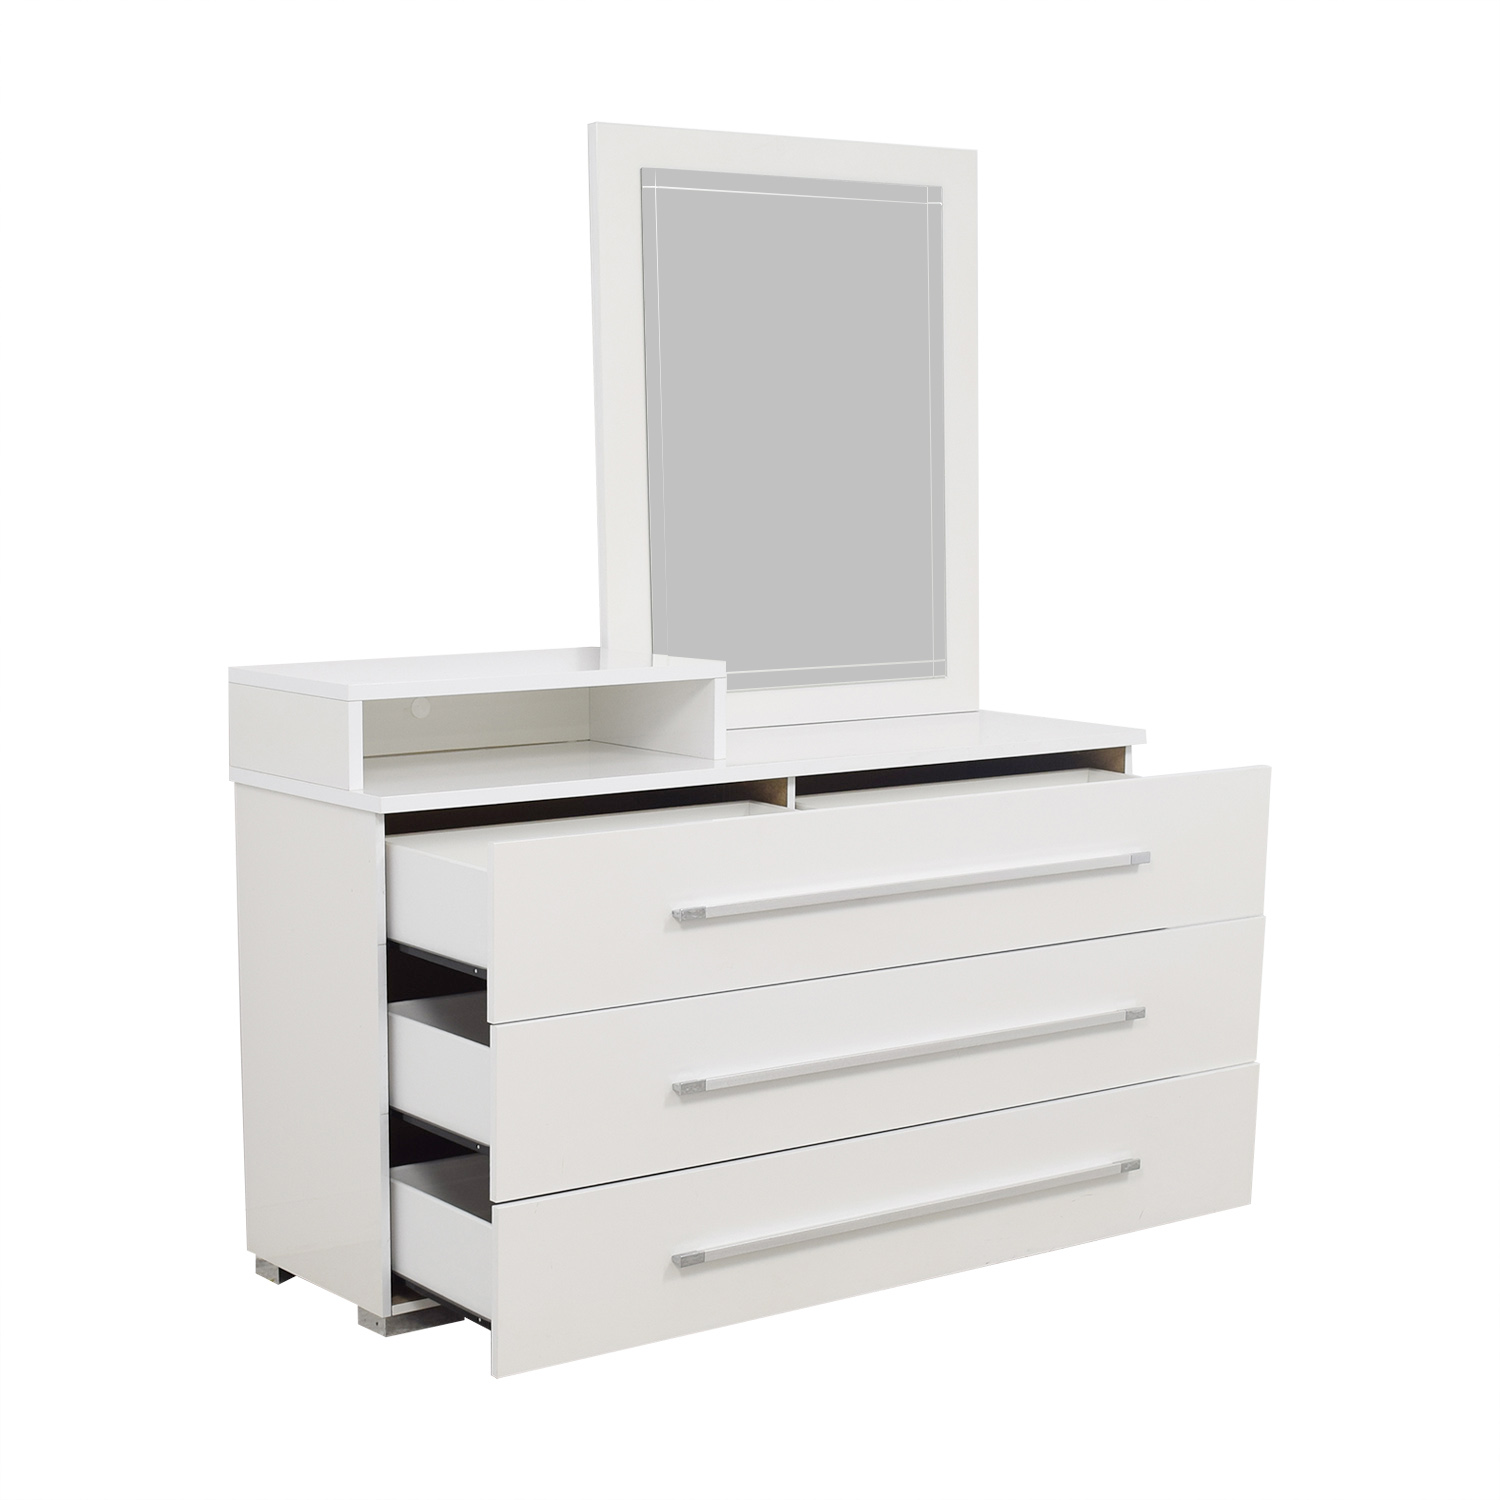 Value City Furniture Value City Furniture White Dresser with Deck and Mirror Storage